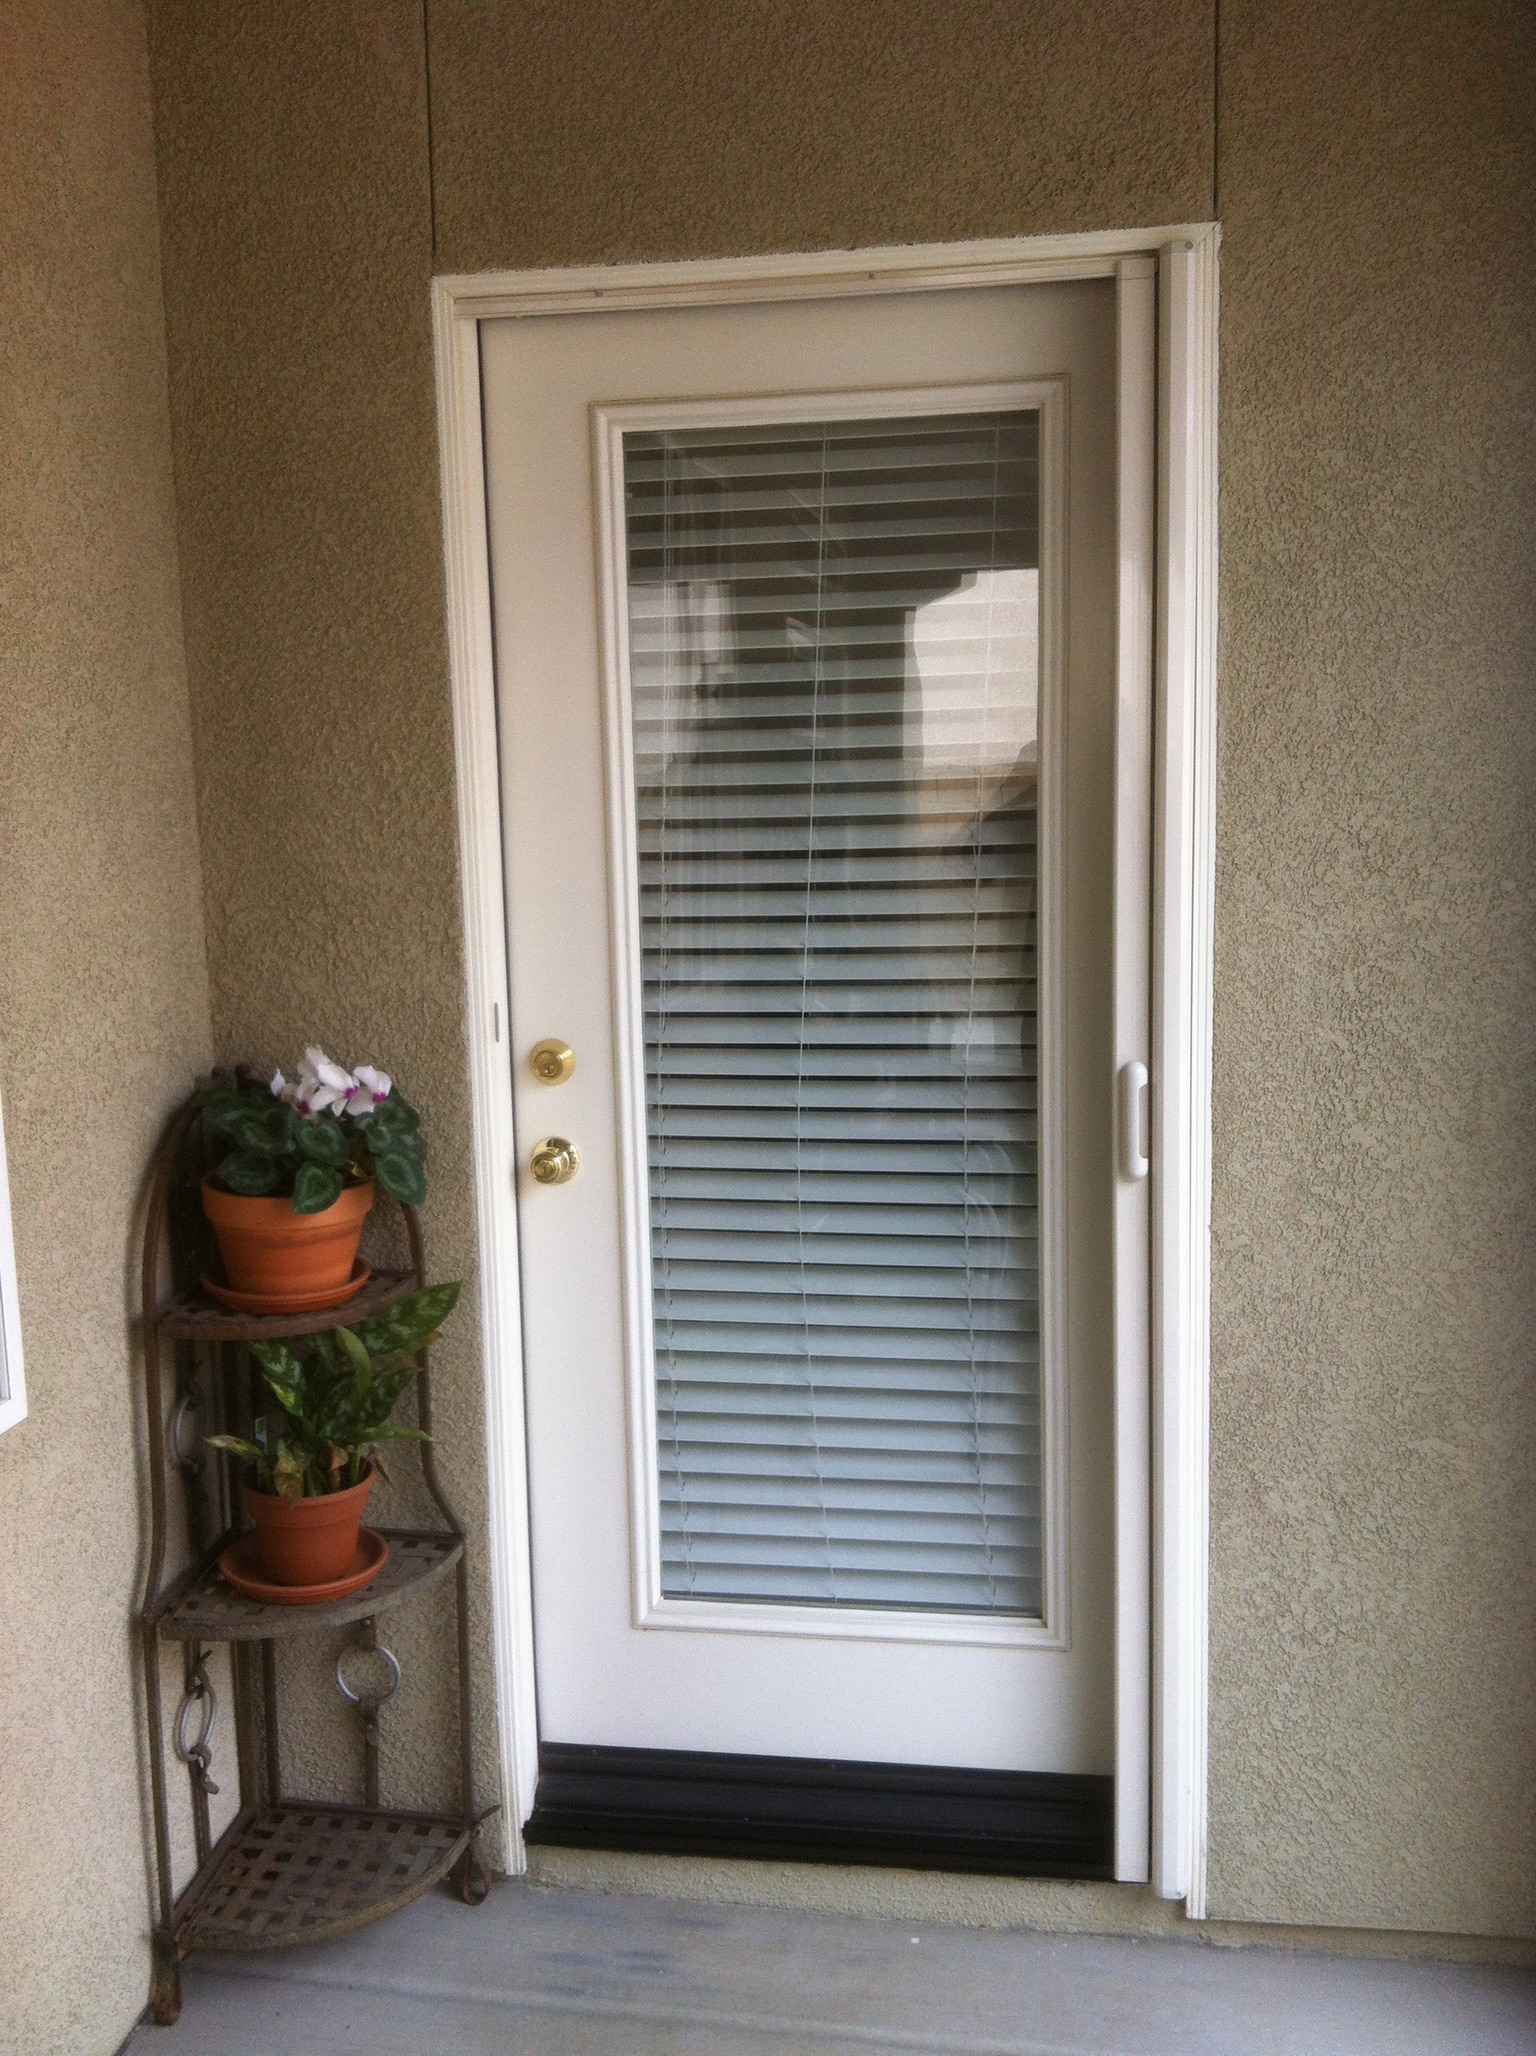 Linen cream Mirage retractable screen door installed in Menifee 1/31/14 - 1